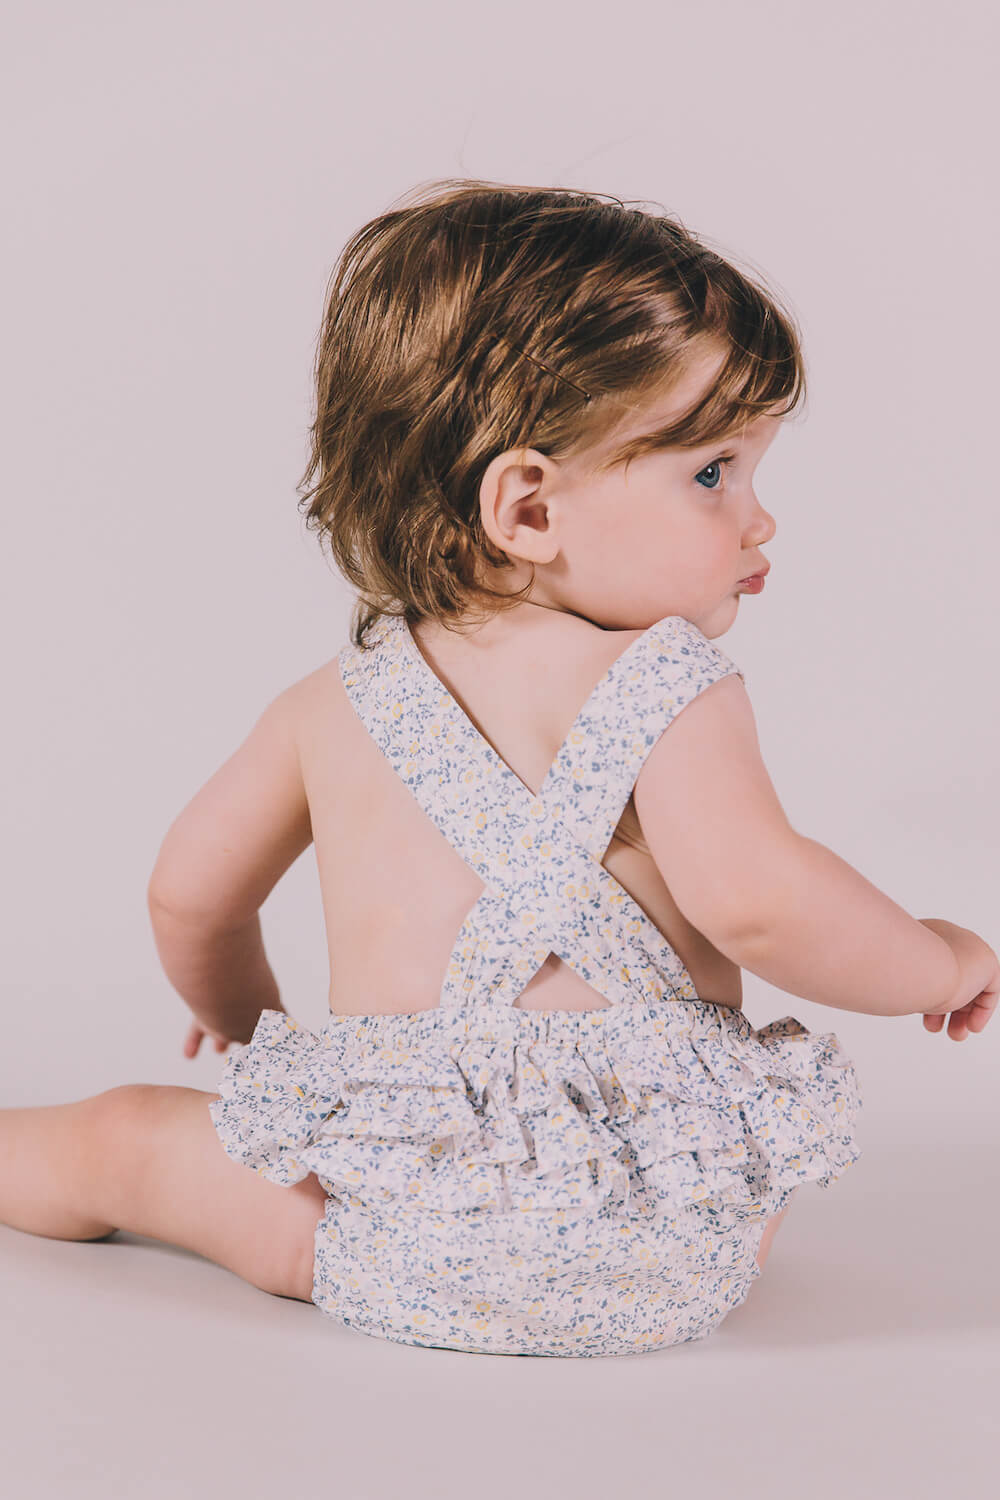 Peggy Jane Playsuit Mini Blue Floral | Tiny People Shop